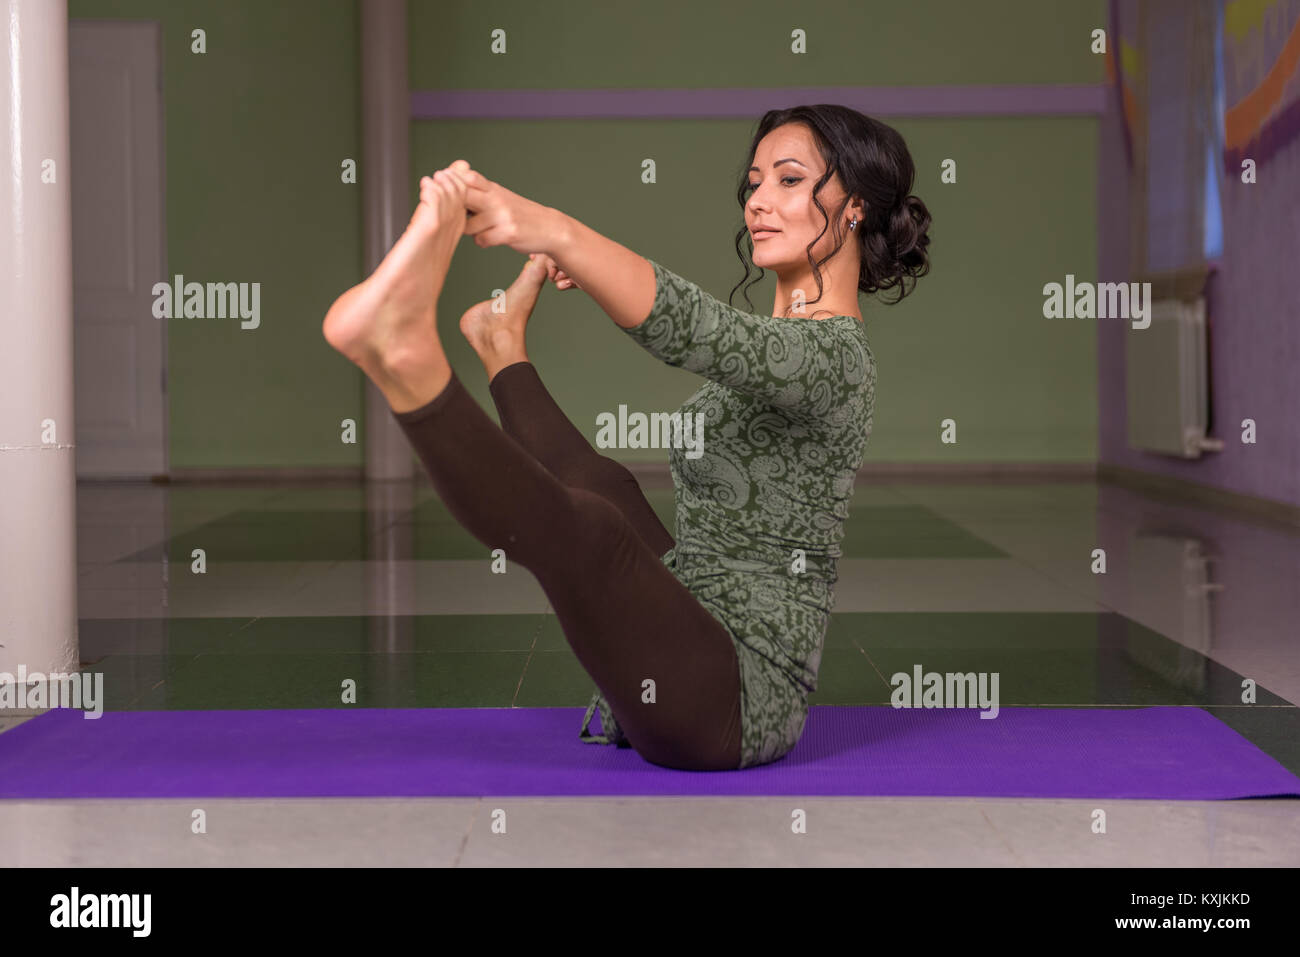 Girl doing yoga stretches in fitness class - Stock Image